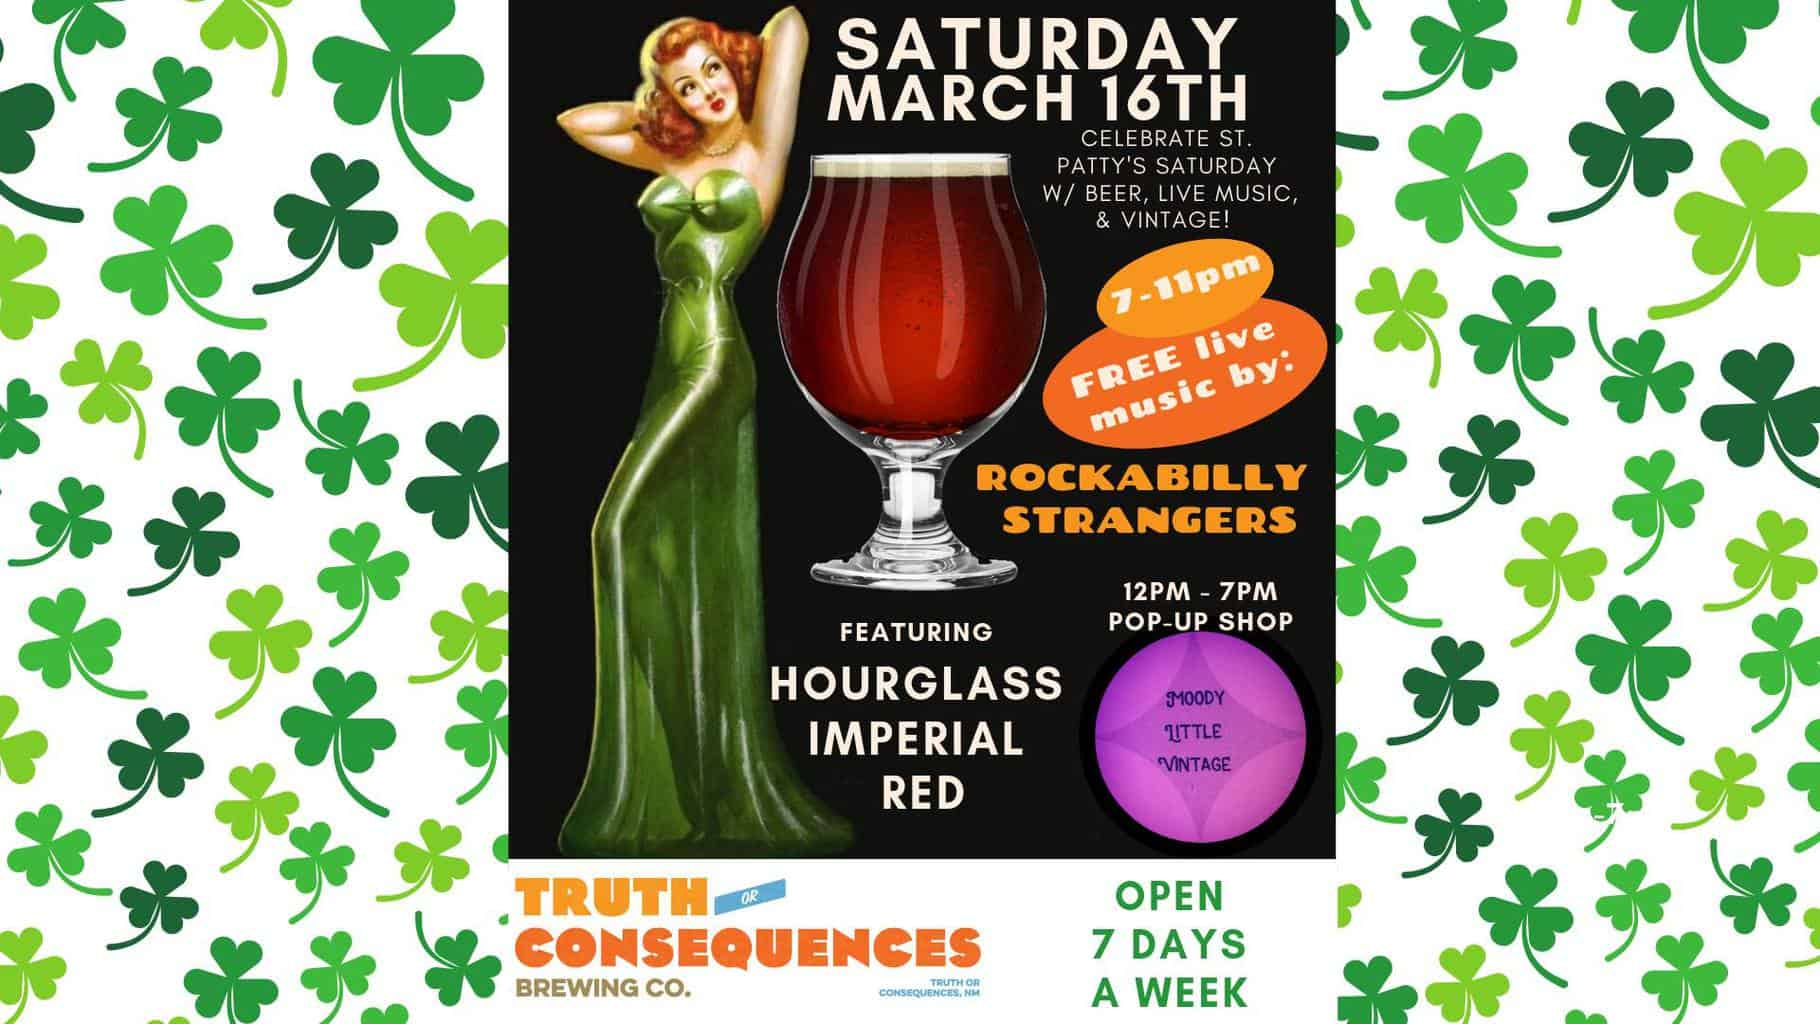 St. Patty's Saturday